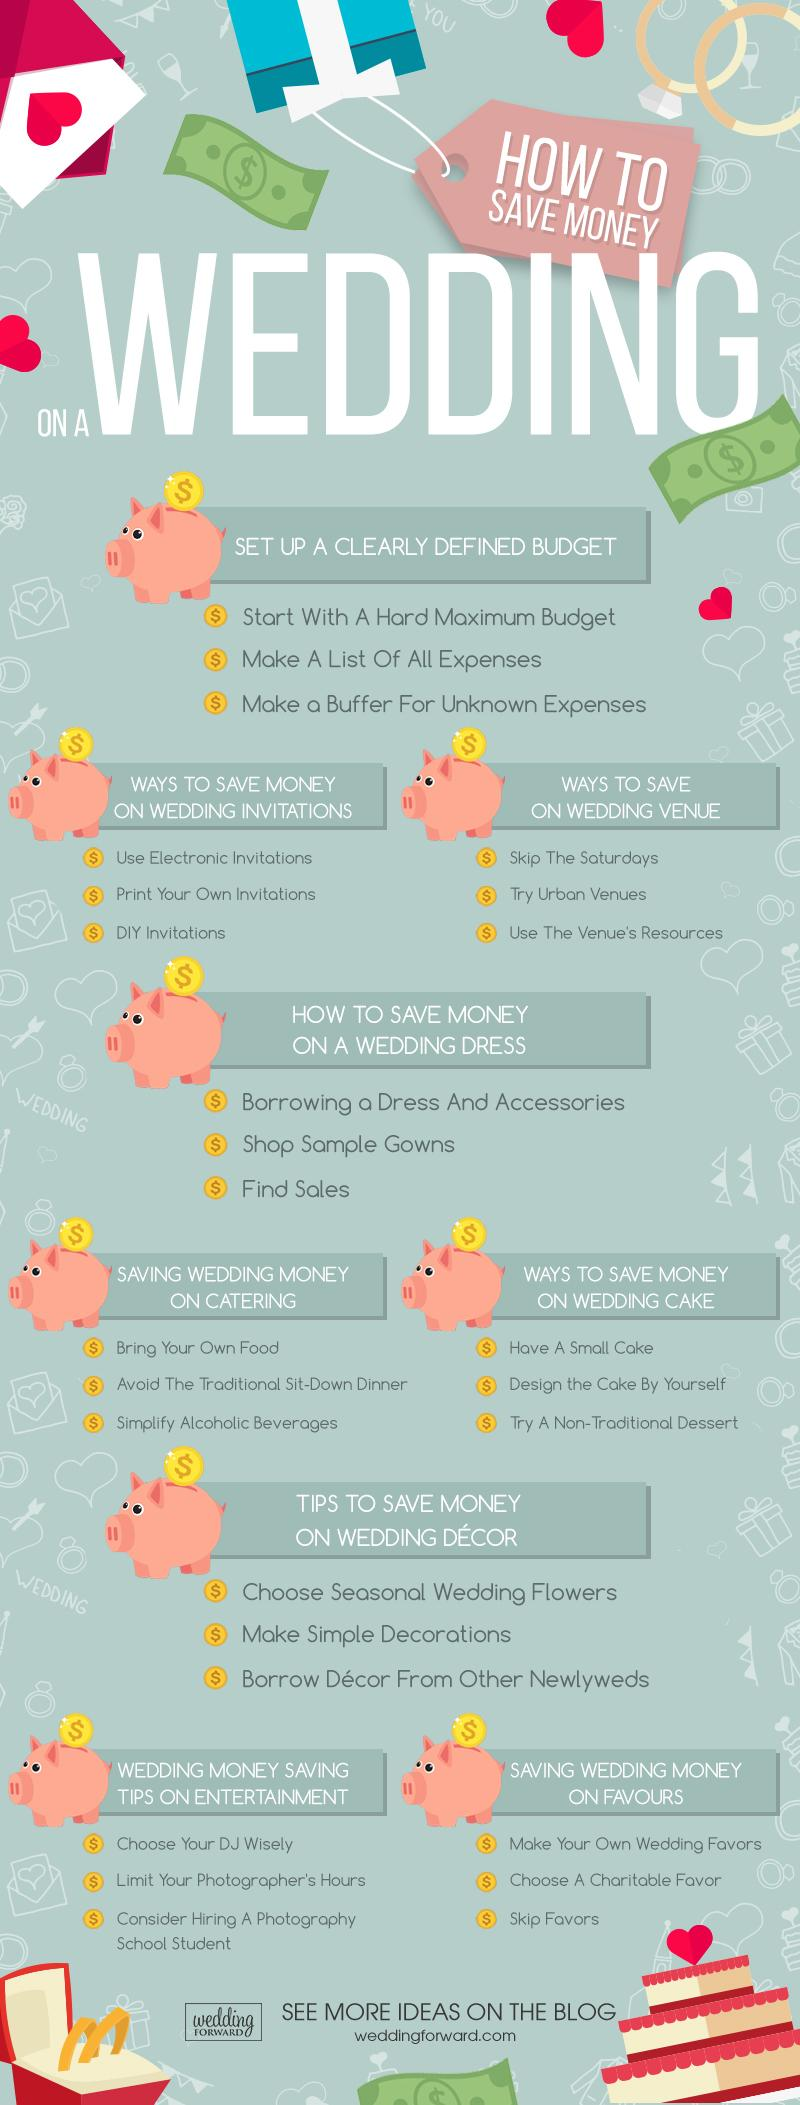 how to save money on a wedding - infographic